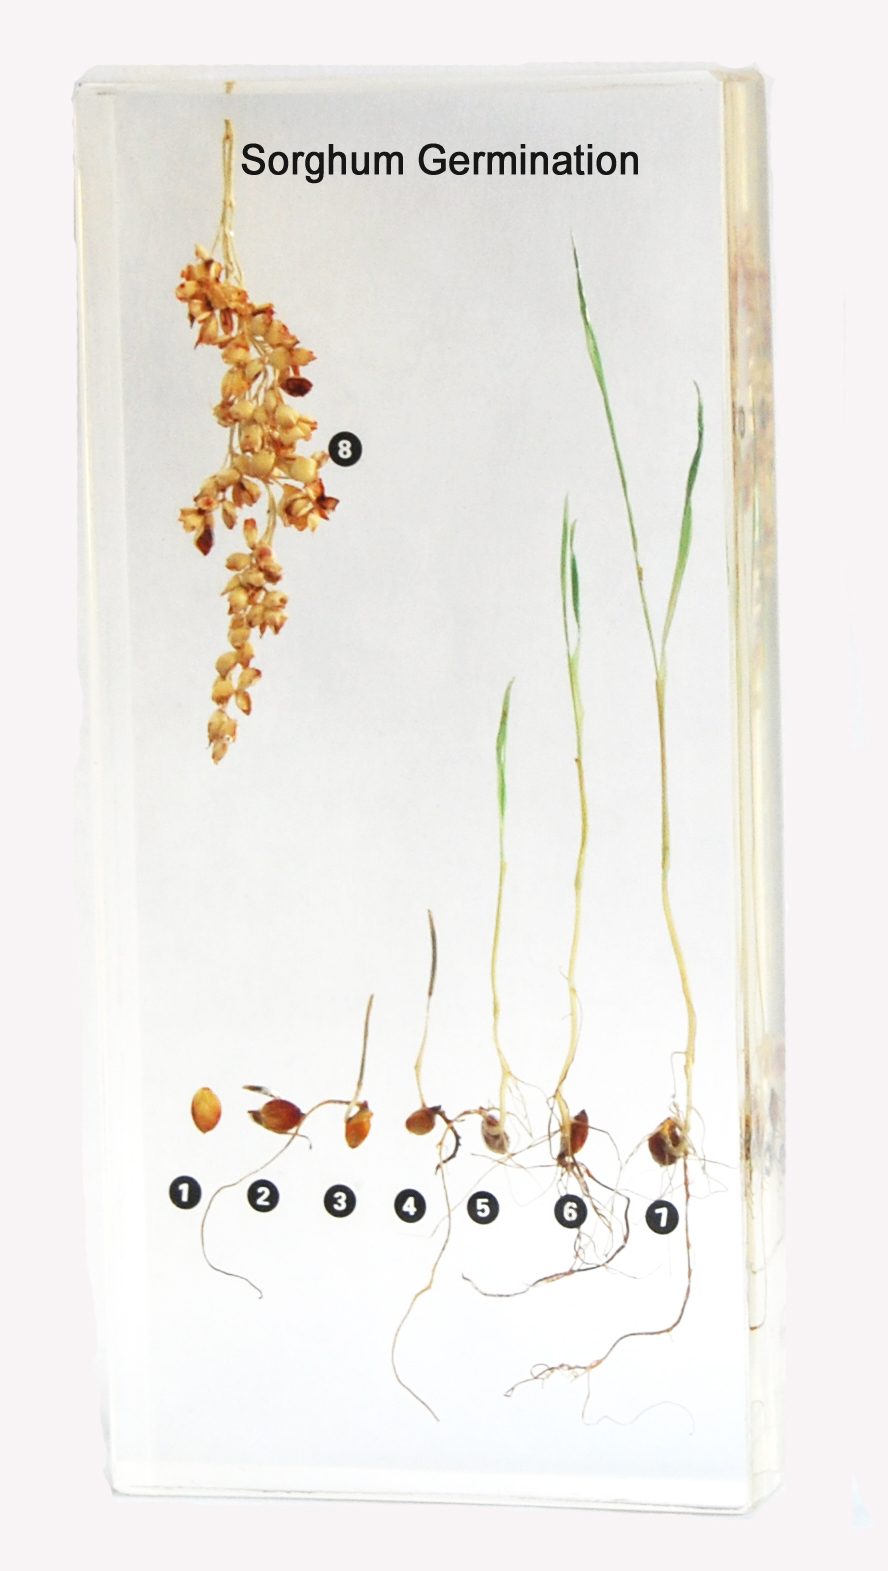 Plant Resin Embedded Specimen Teaching Resources Plant Embedded Specimen ZLF Sorghum Plant Growth History Specimen for School Science Education